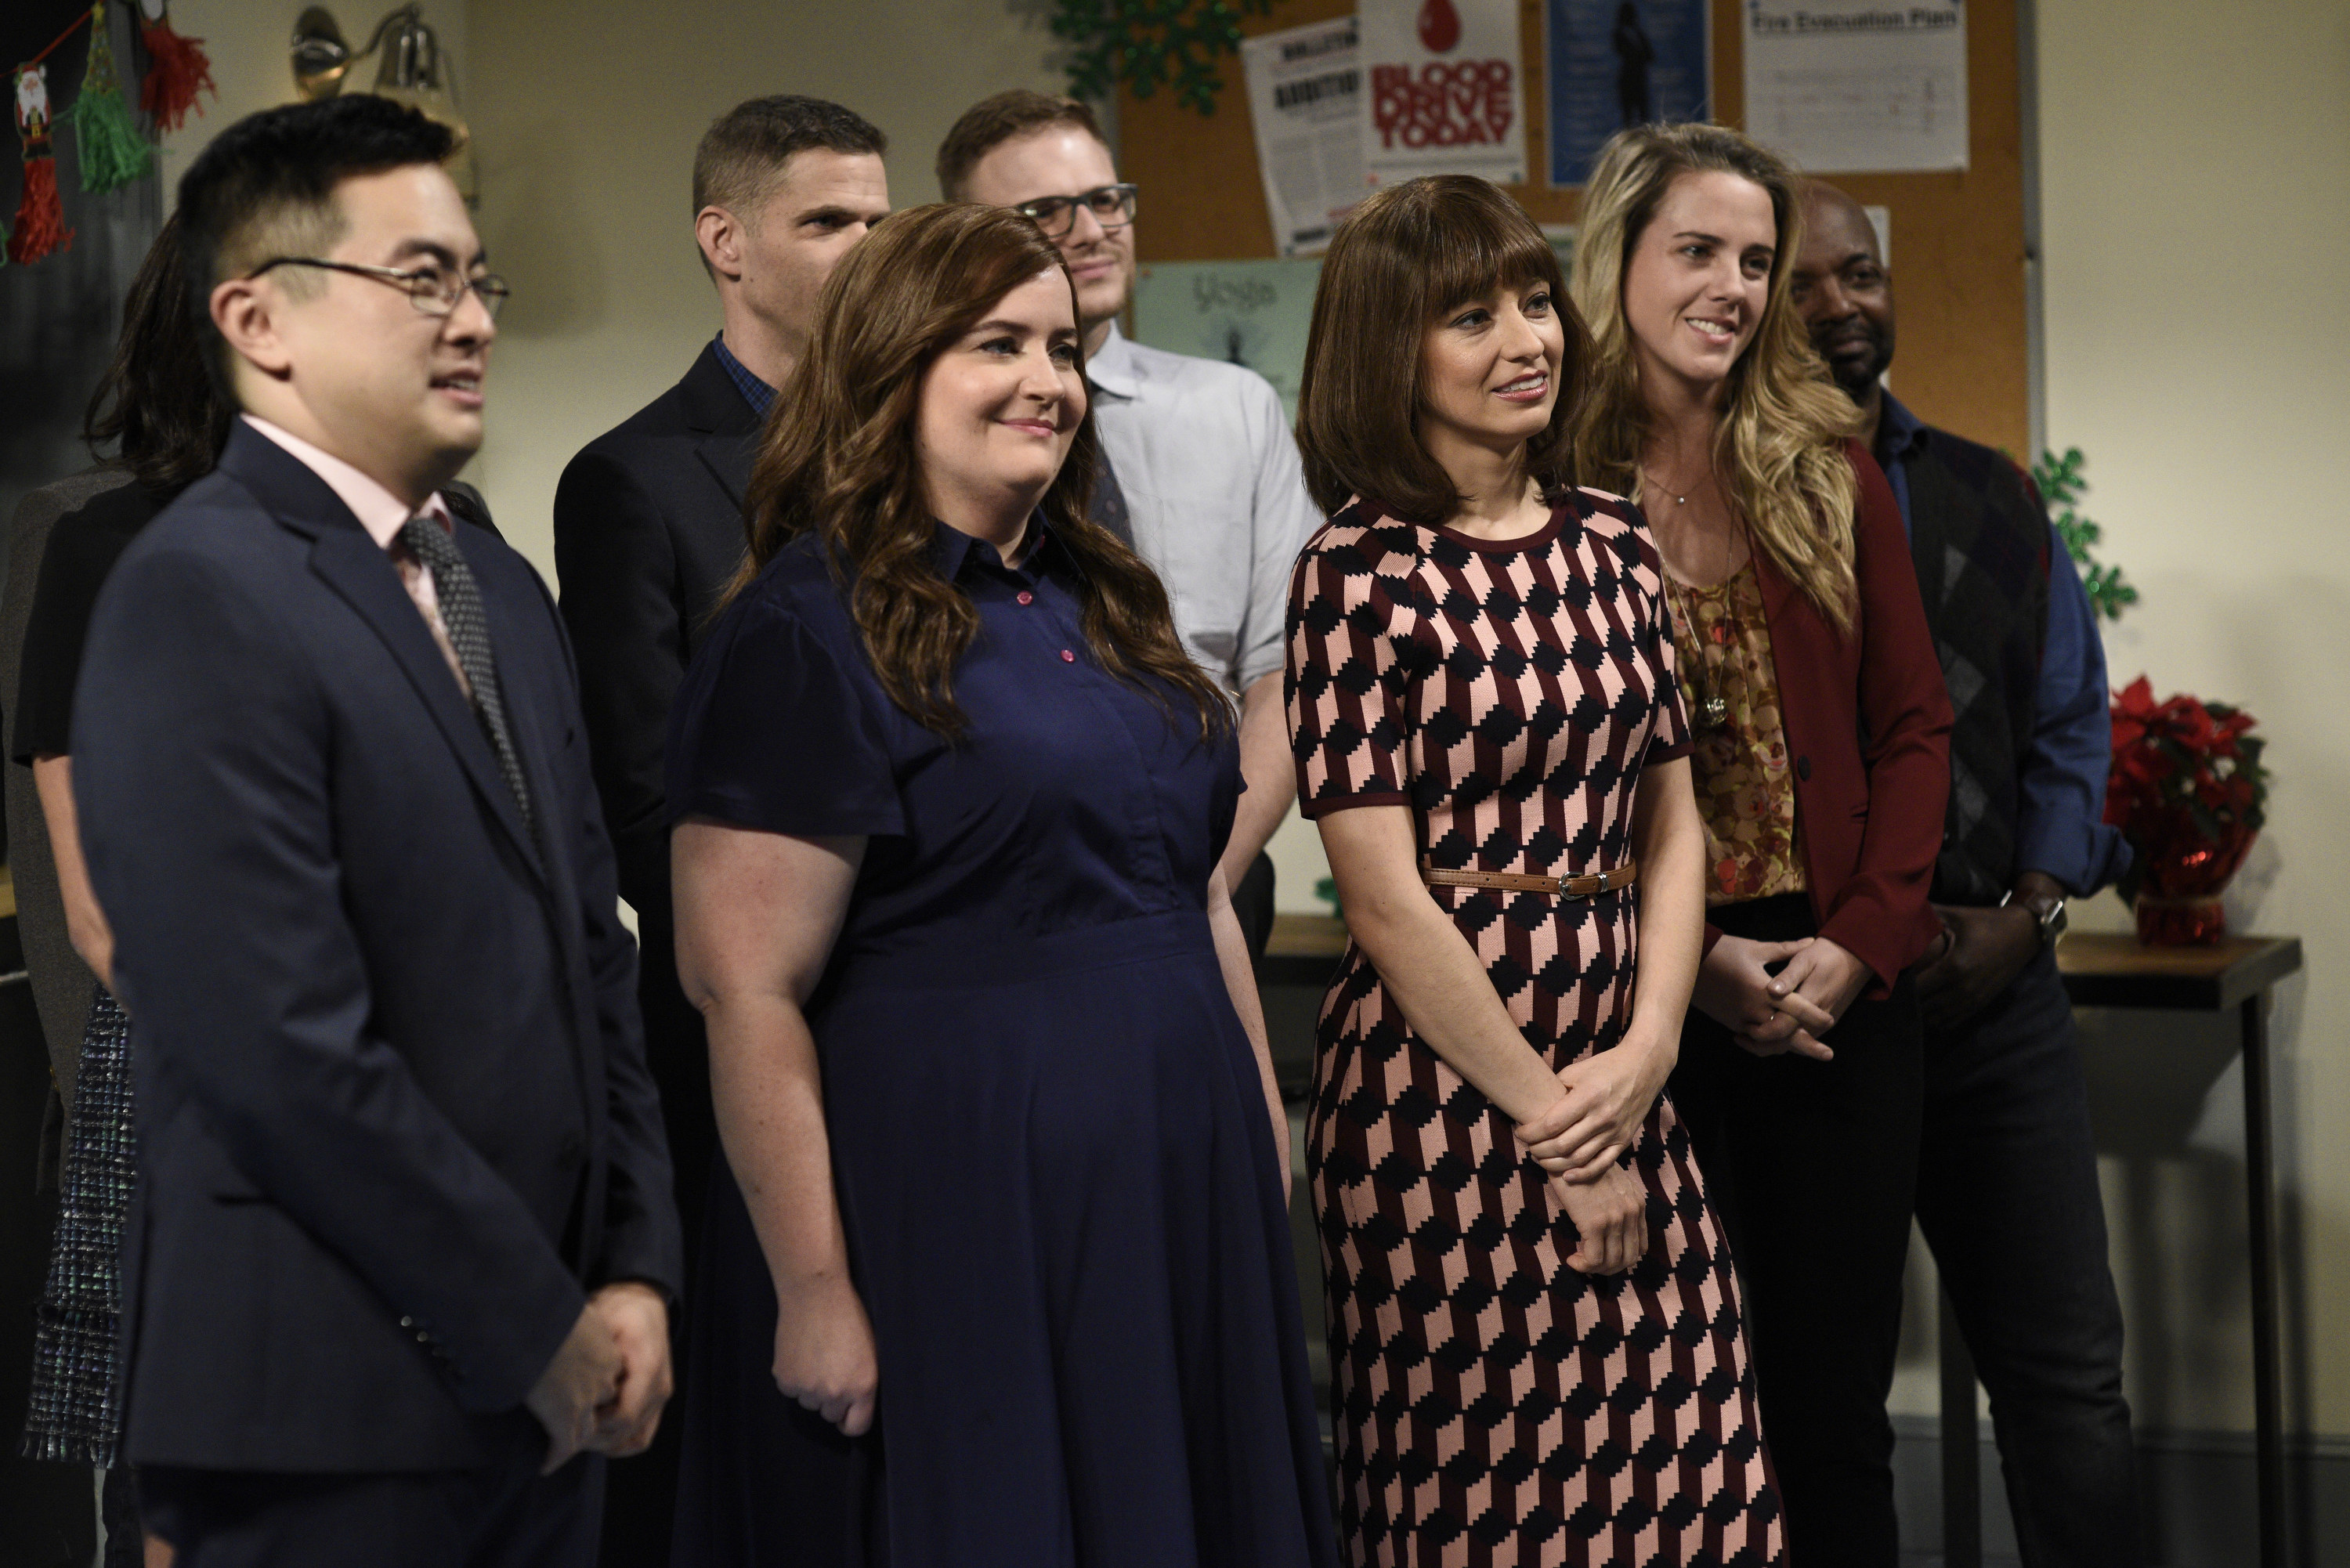 Aidy and Bowen appear in a sketch together